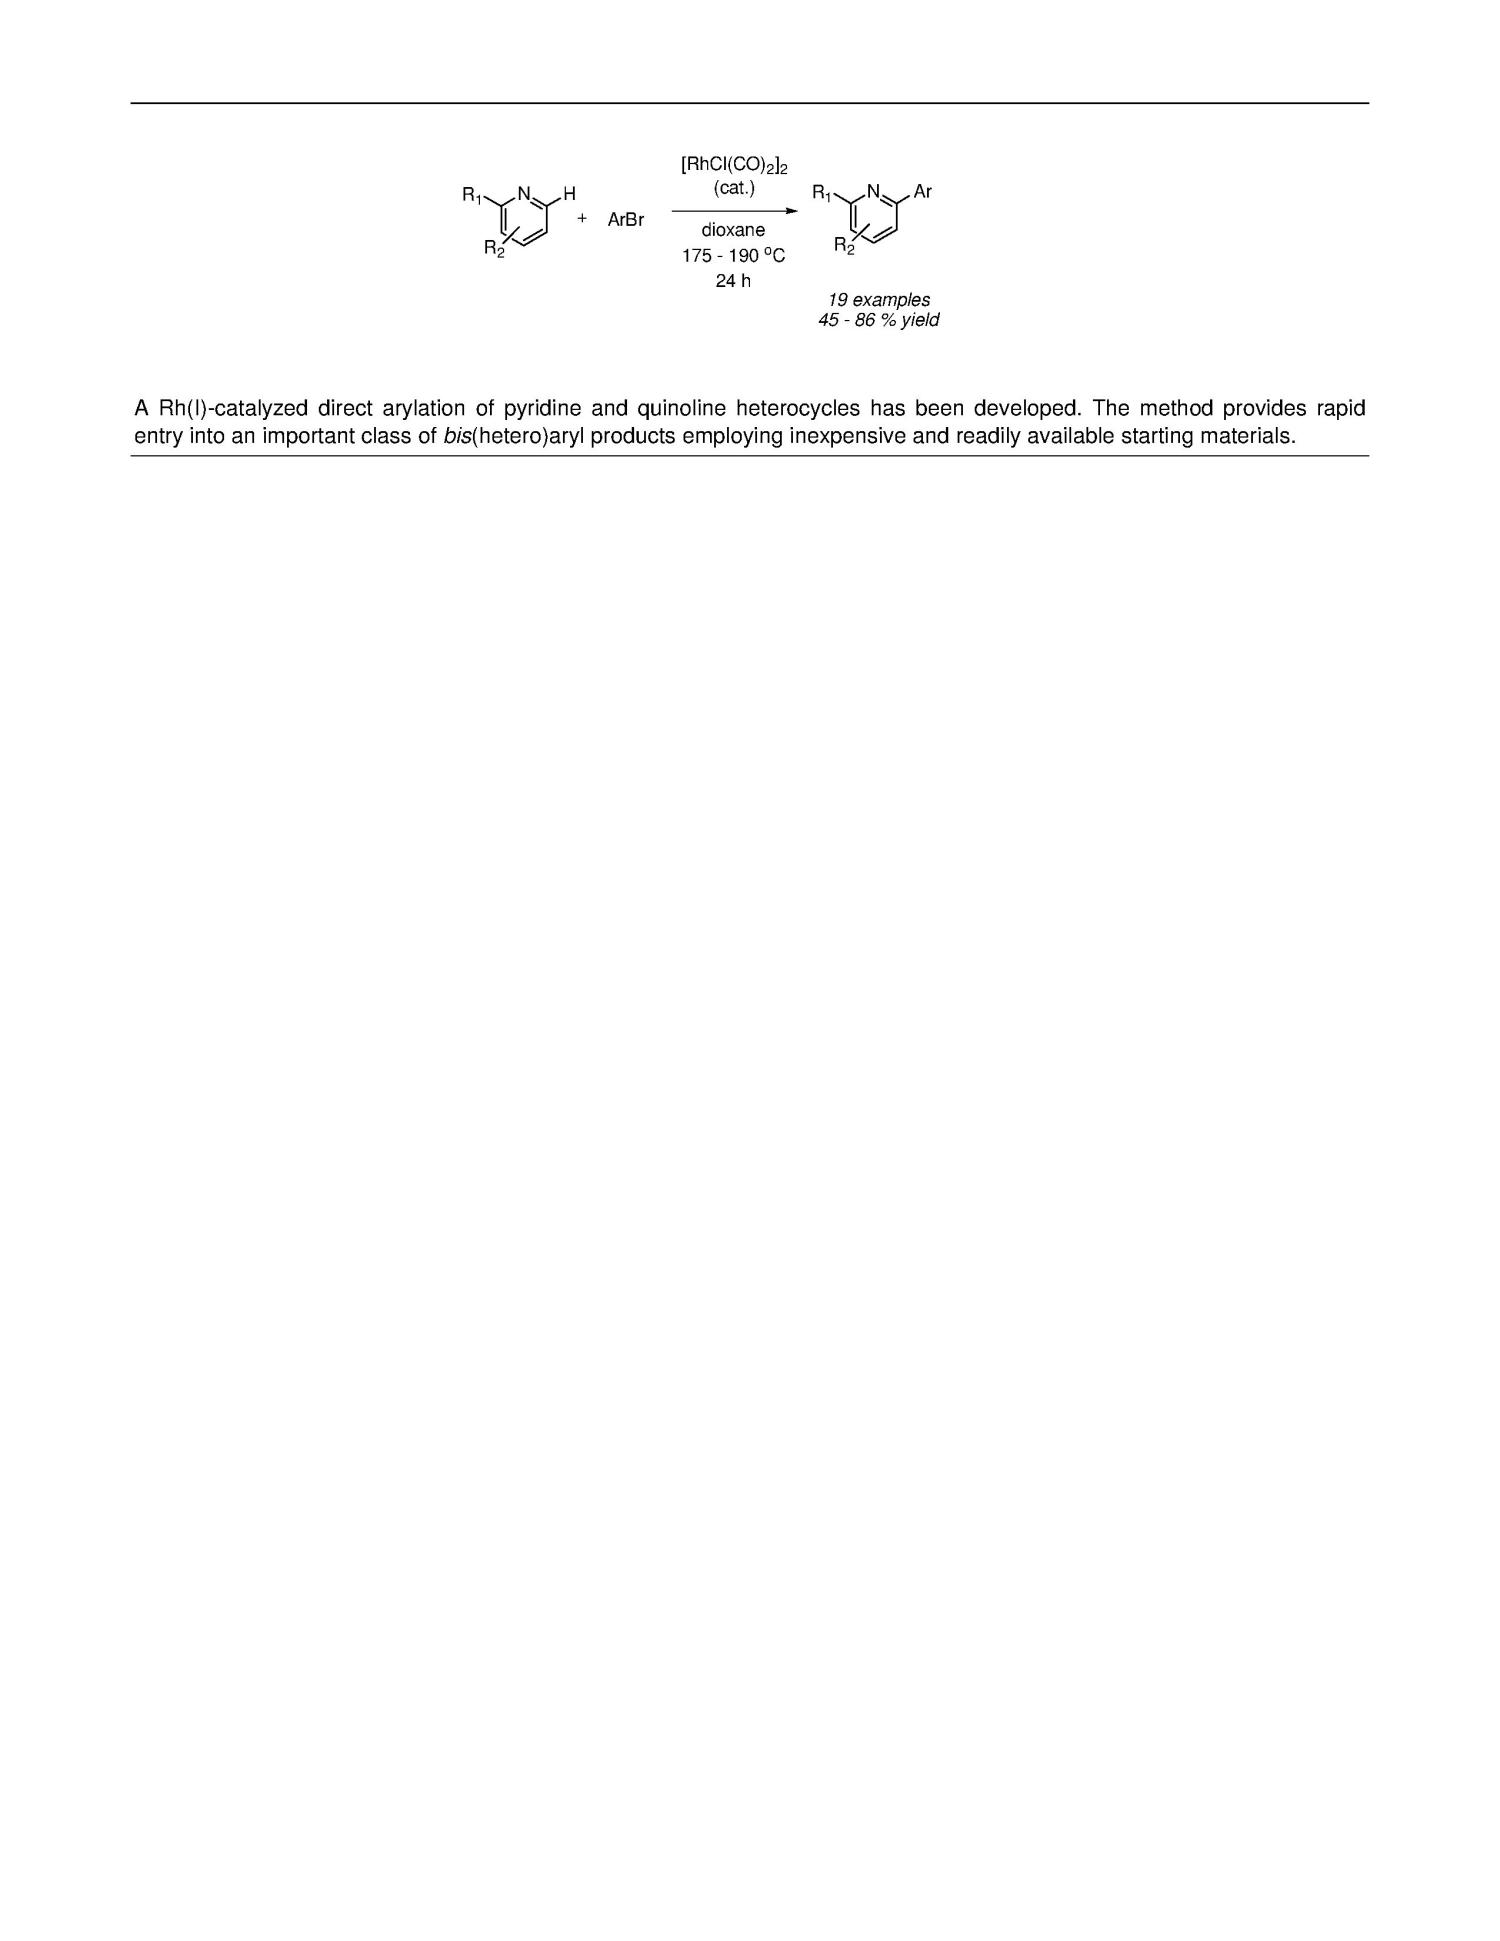 Rh(I)-Catalyzed Direct Arylation of Pyridines and Quinolines                                                                                                      [Sequence #]: 3 of 3